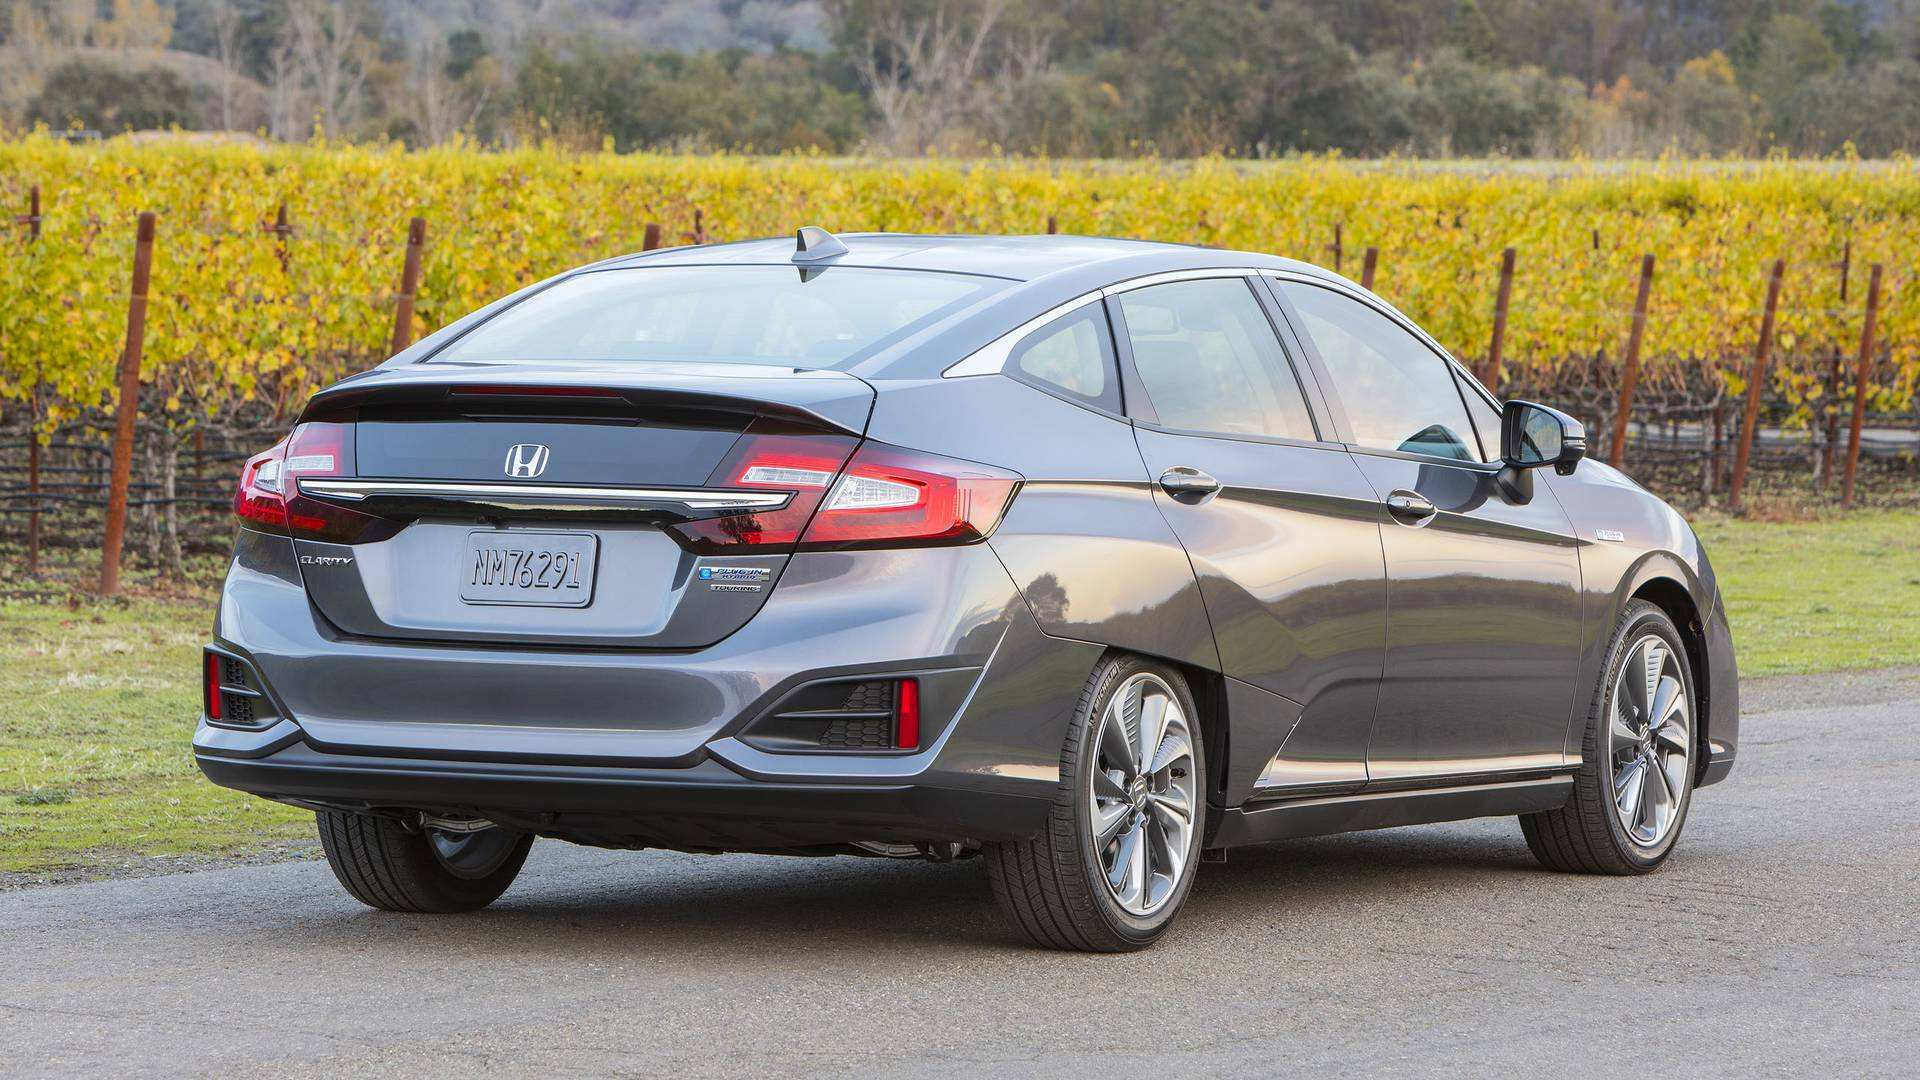 47 Concept of 2020 Honda Clarity Plug In Hybrid Wallpaper for 2020 Honda Clarity Plug In Hybrid